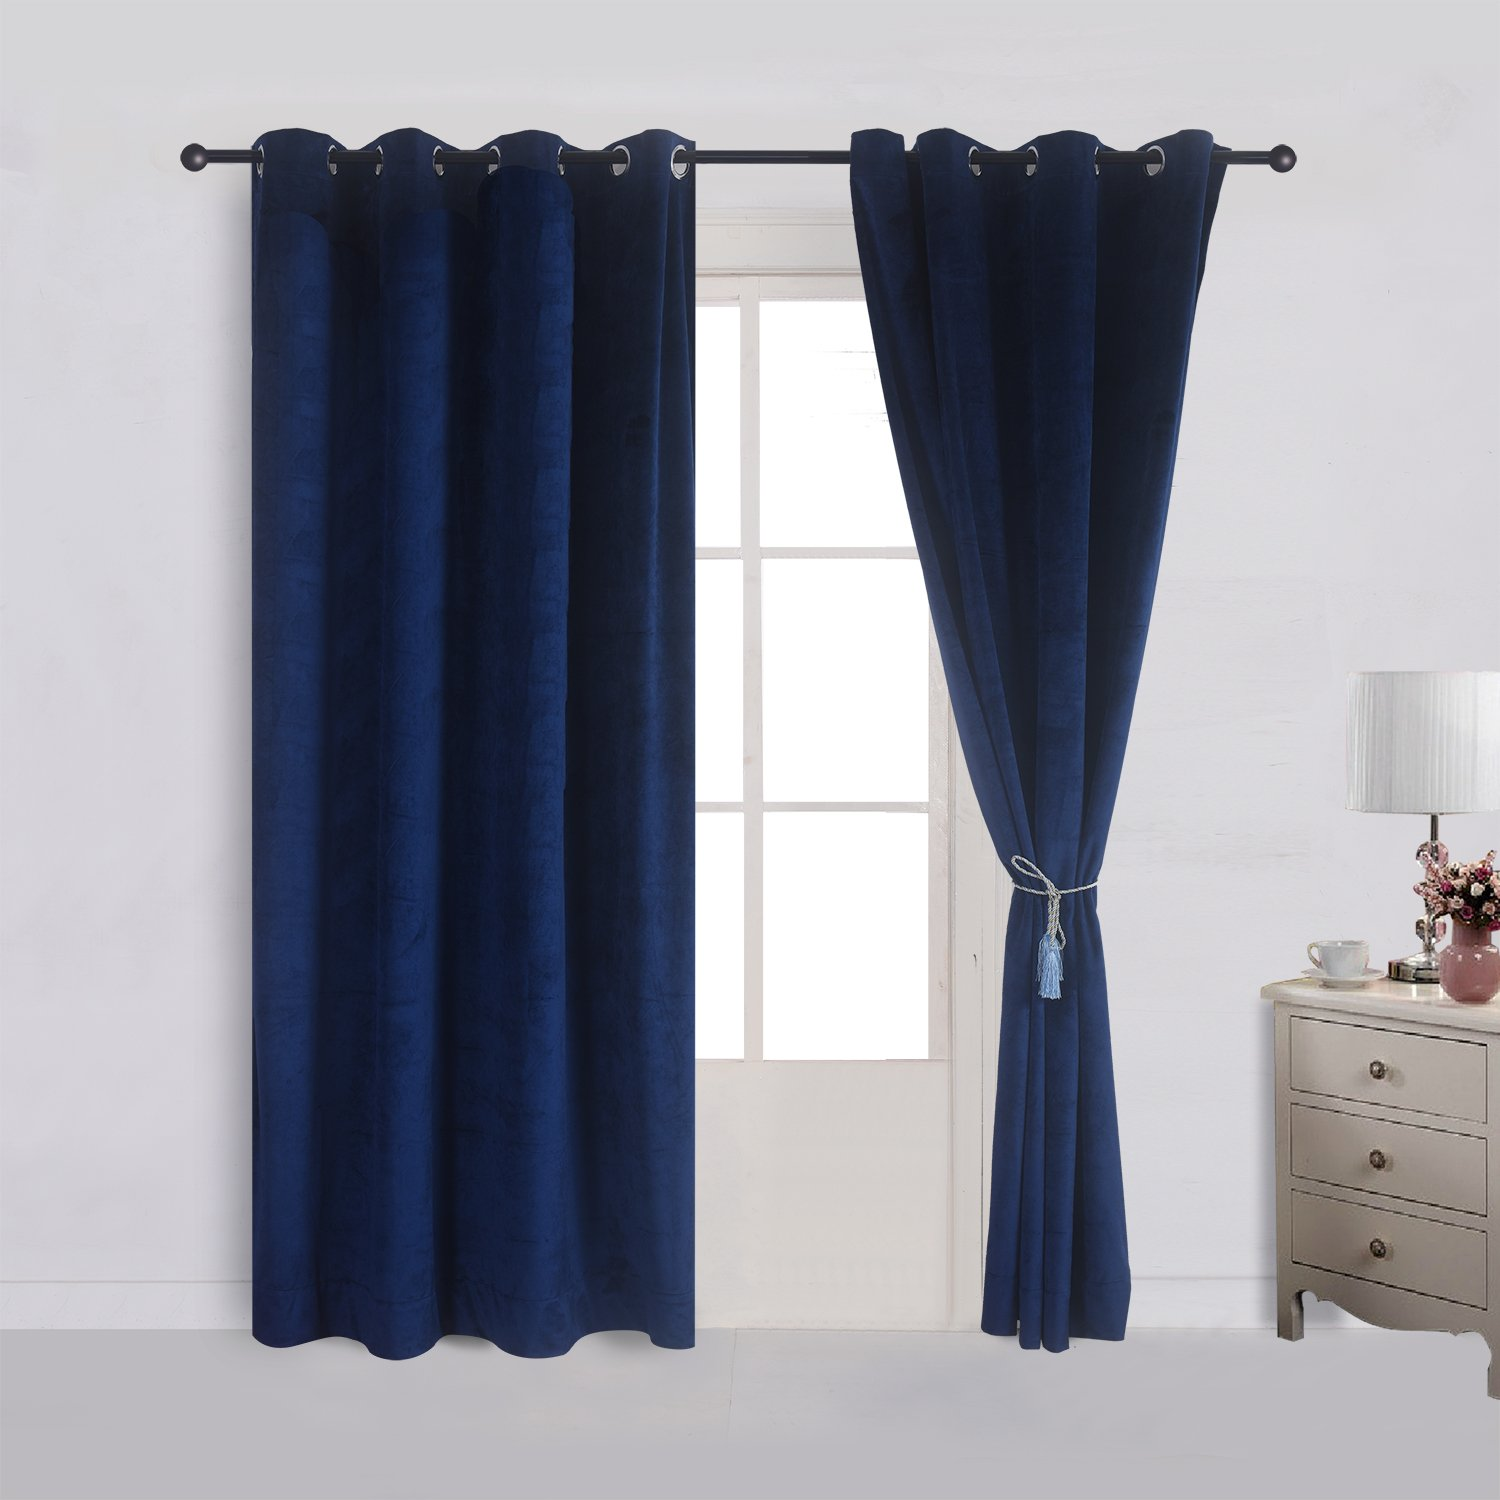 Cherry Home Set of 2 Velvet Flannel Blackout Curtains Panel Drapes Grommet Draperies Eyelet 52Wx63L inch Navy Royal Blue(2 panels)Theater| Bedroom| Living Room| Hotel